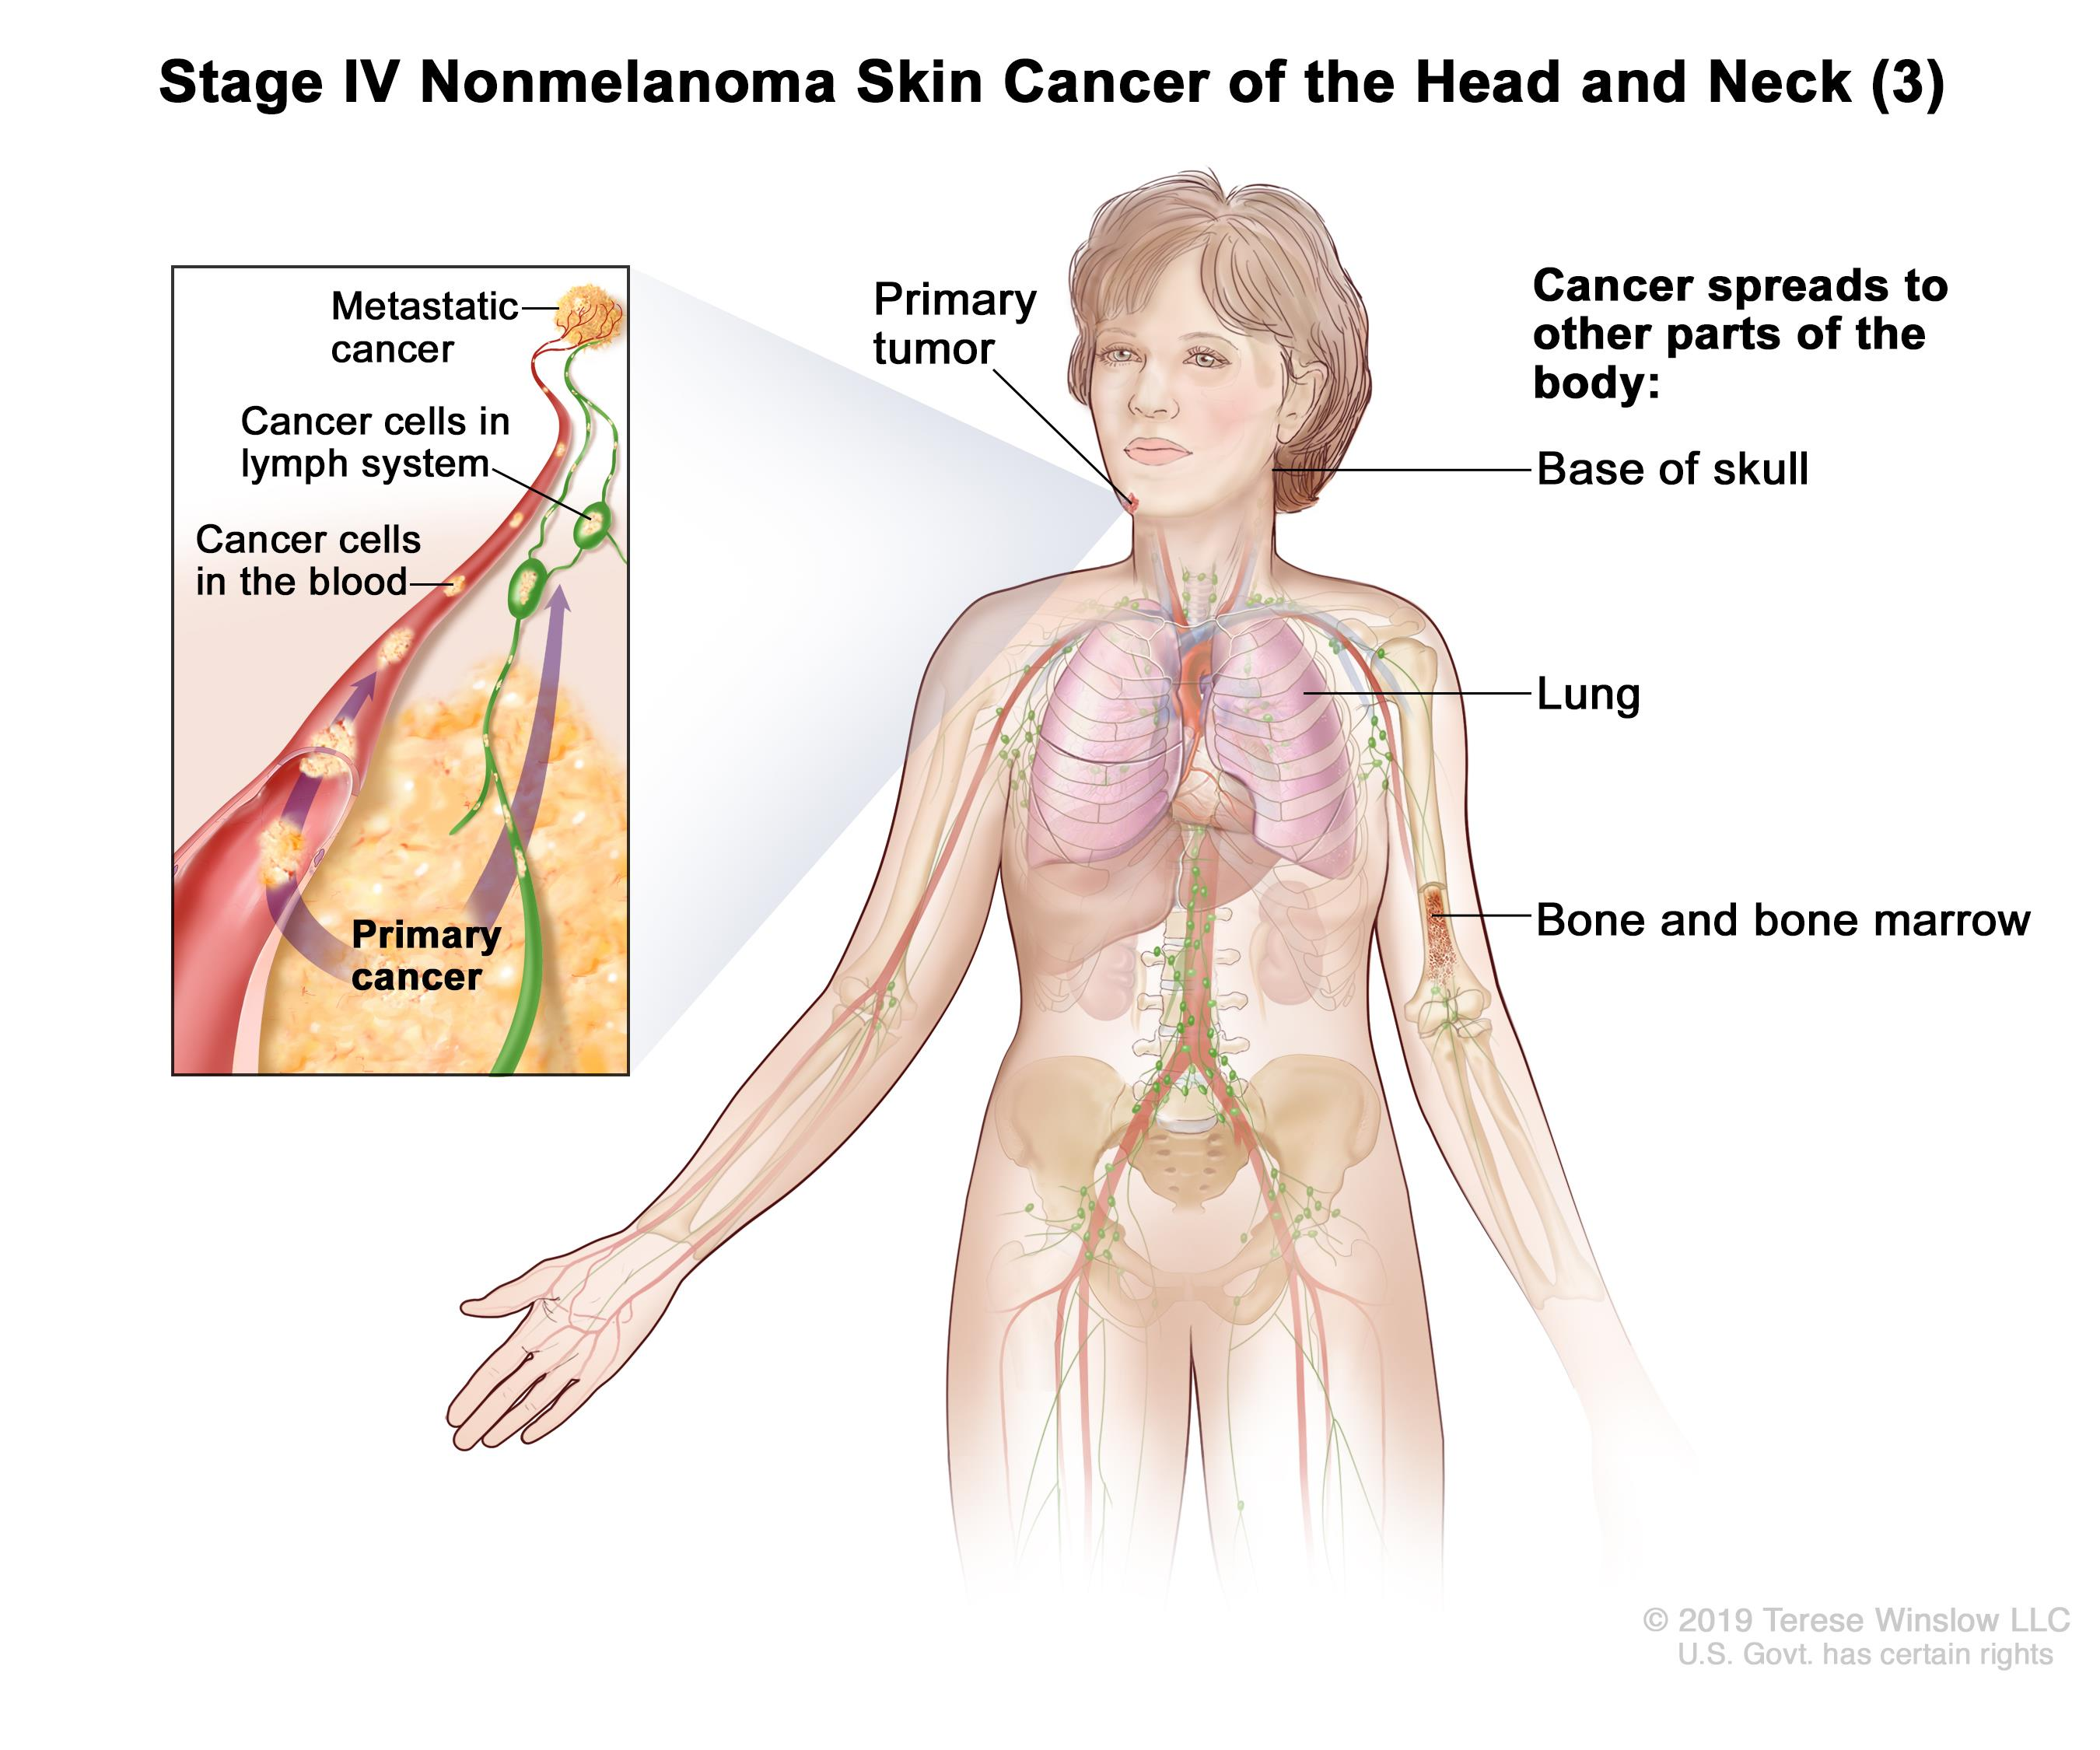 Stage IV nonmelanoma skin cancer of the head and neck (3); drawing shows a primary tumor on the face and other parts of the body where nonmelanoma skin cancer may spread, including the base of the skull, the lung, and the bone and bone marrow. An inset shows cancer cells spreading through the blood and lymph system to another part of the body where metastatic cancer has formed.